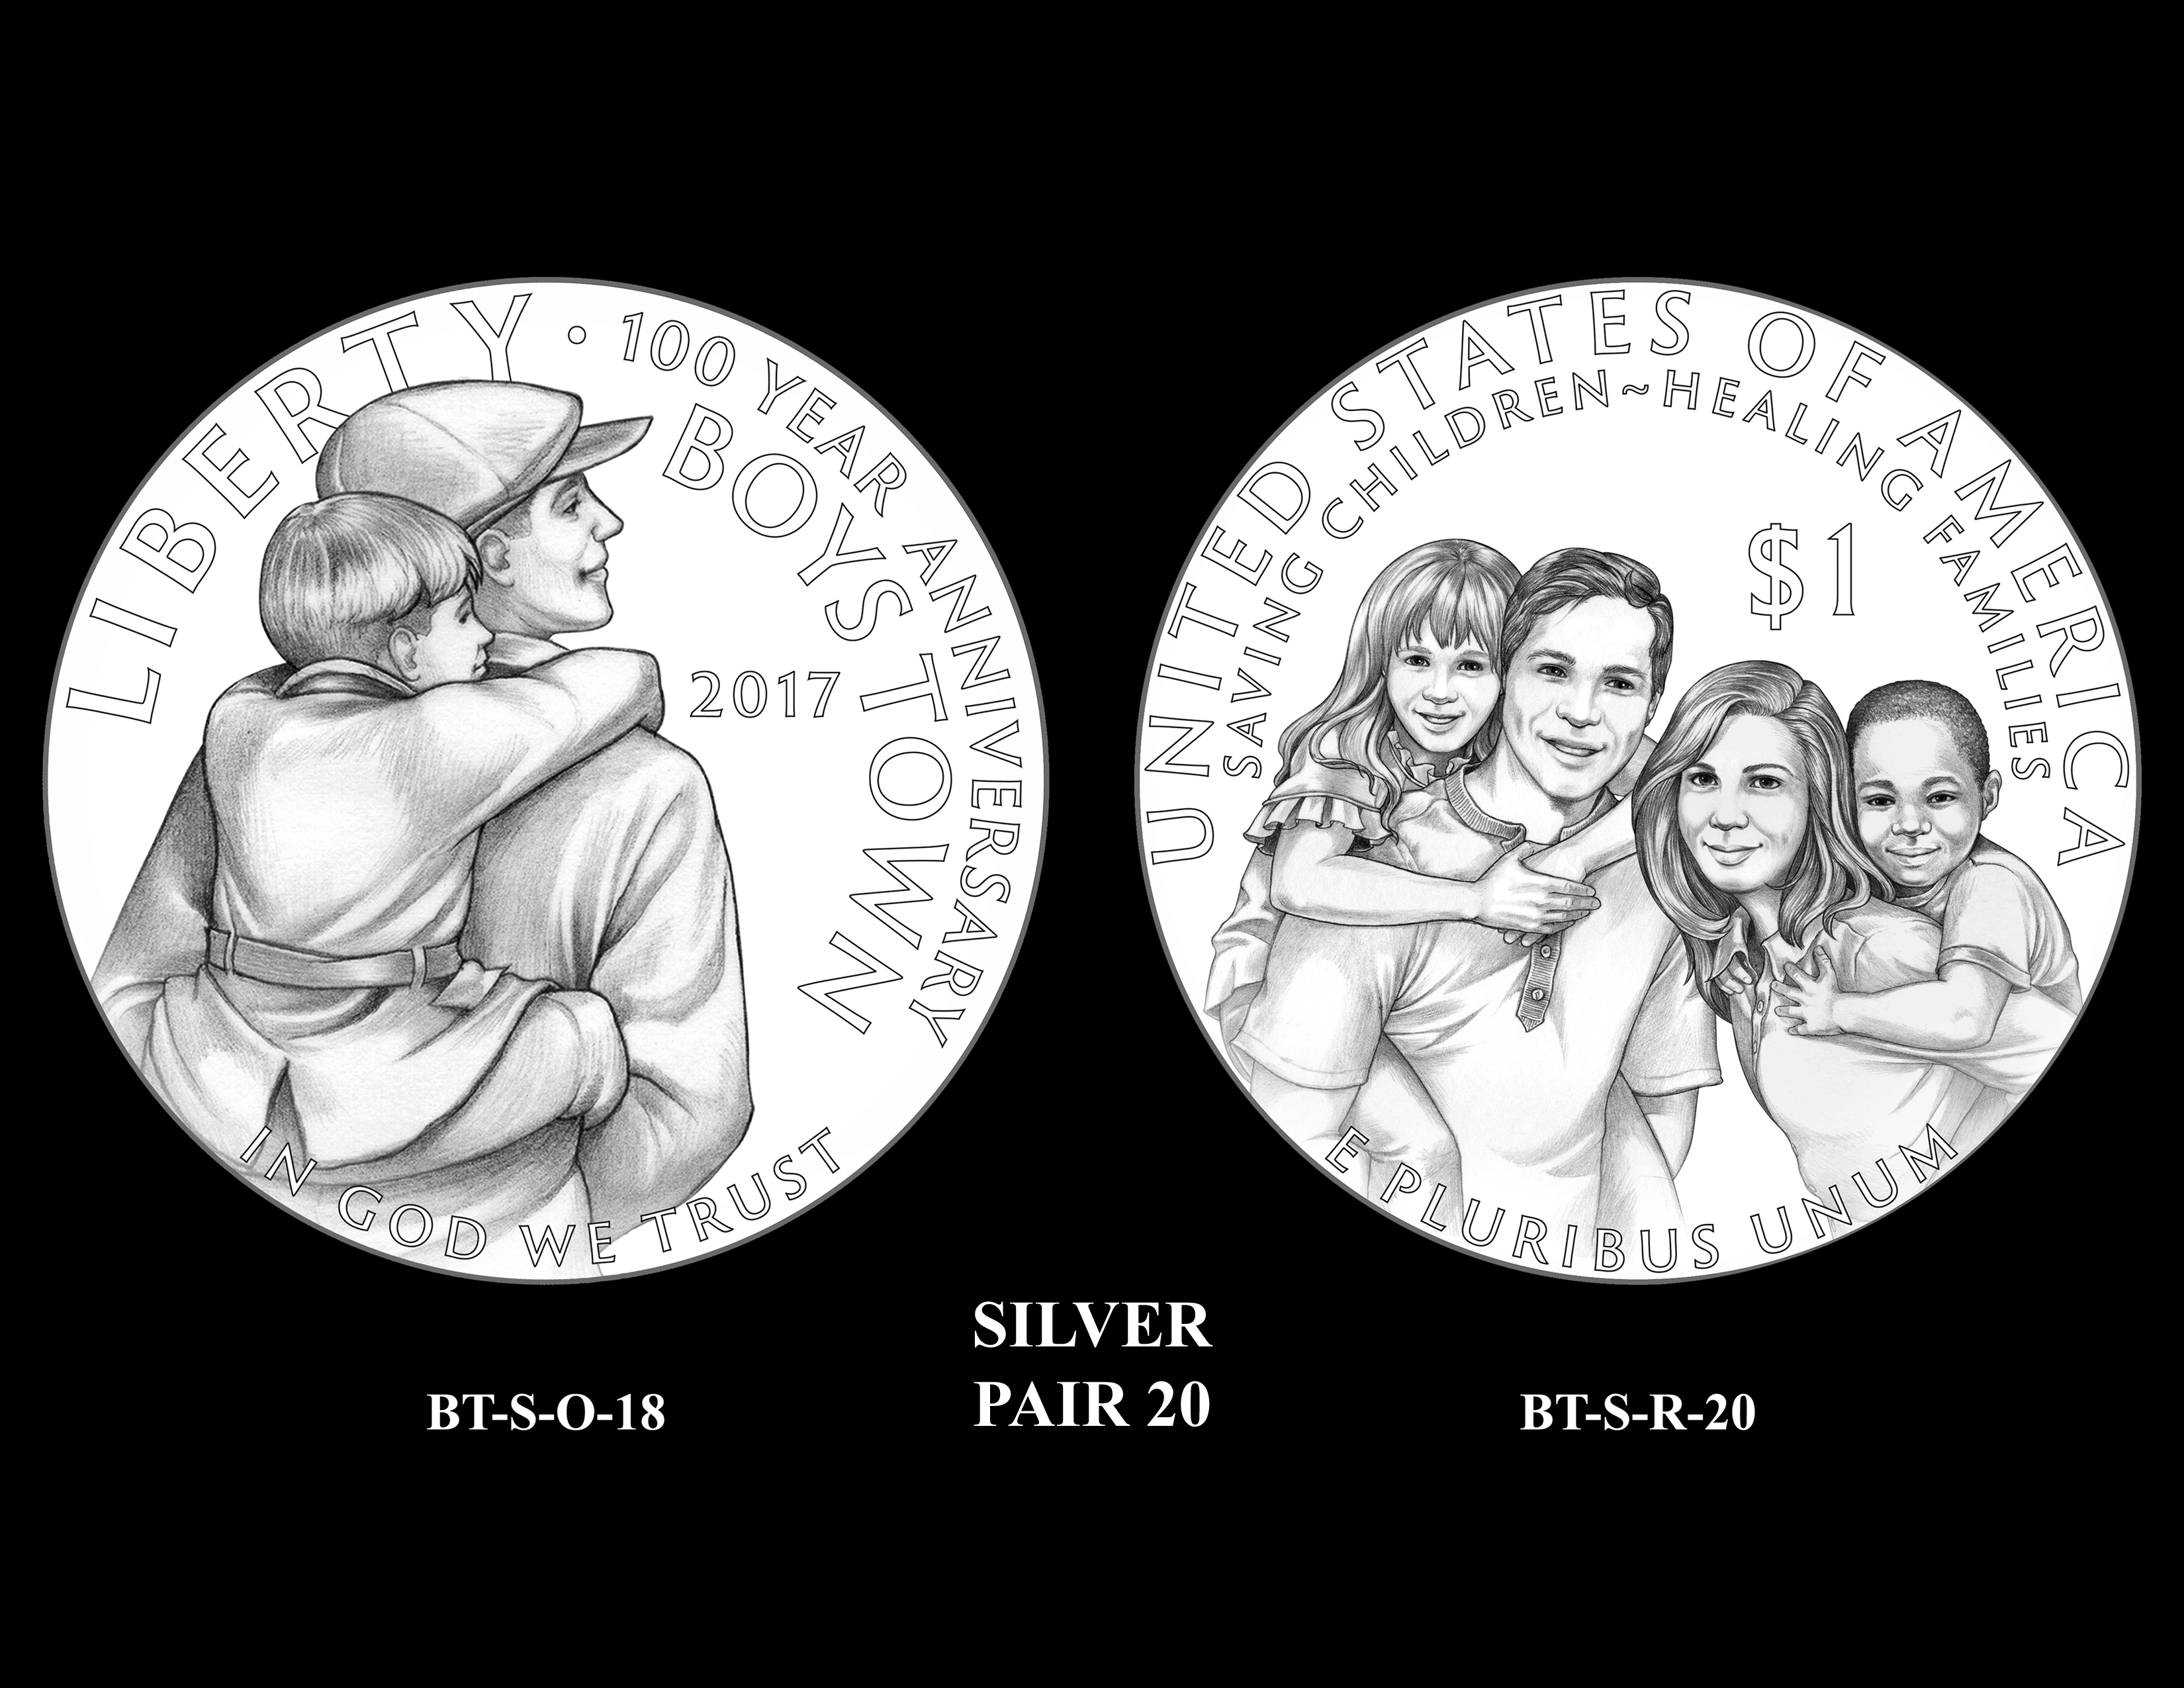 Silver-Pair-20 -- 2017 Boystown Centennial Commemorative Coin  Program